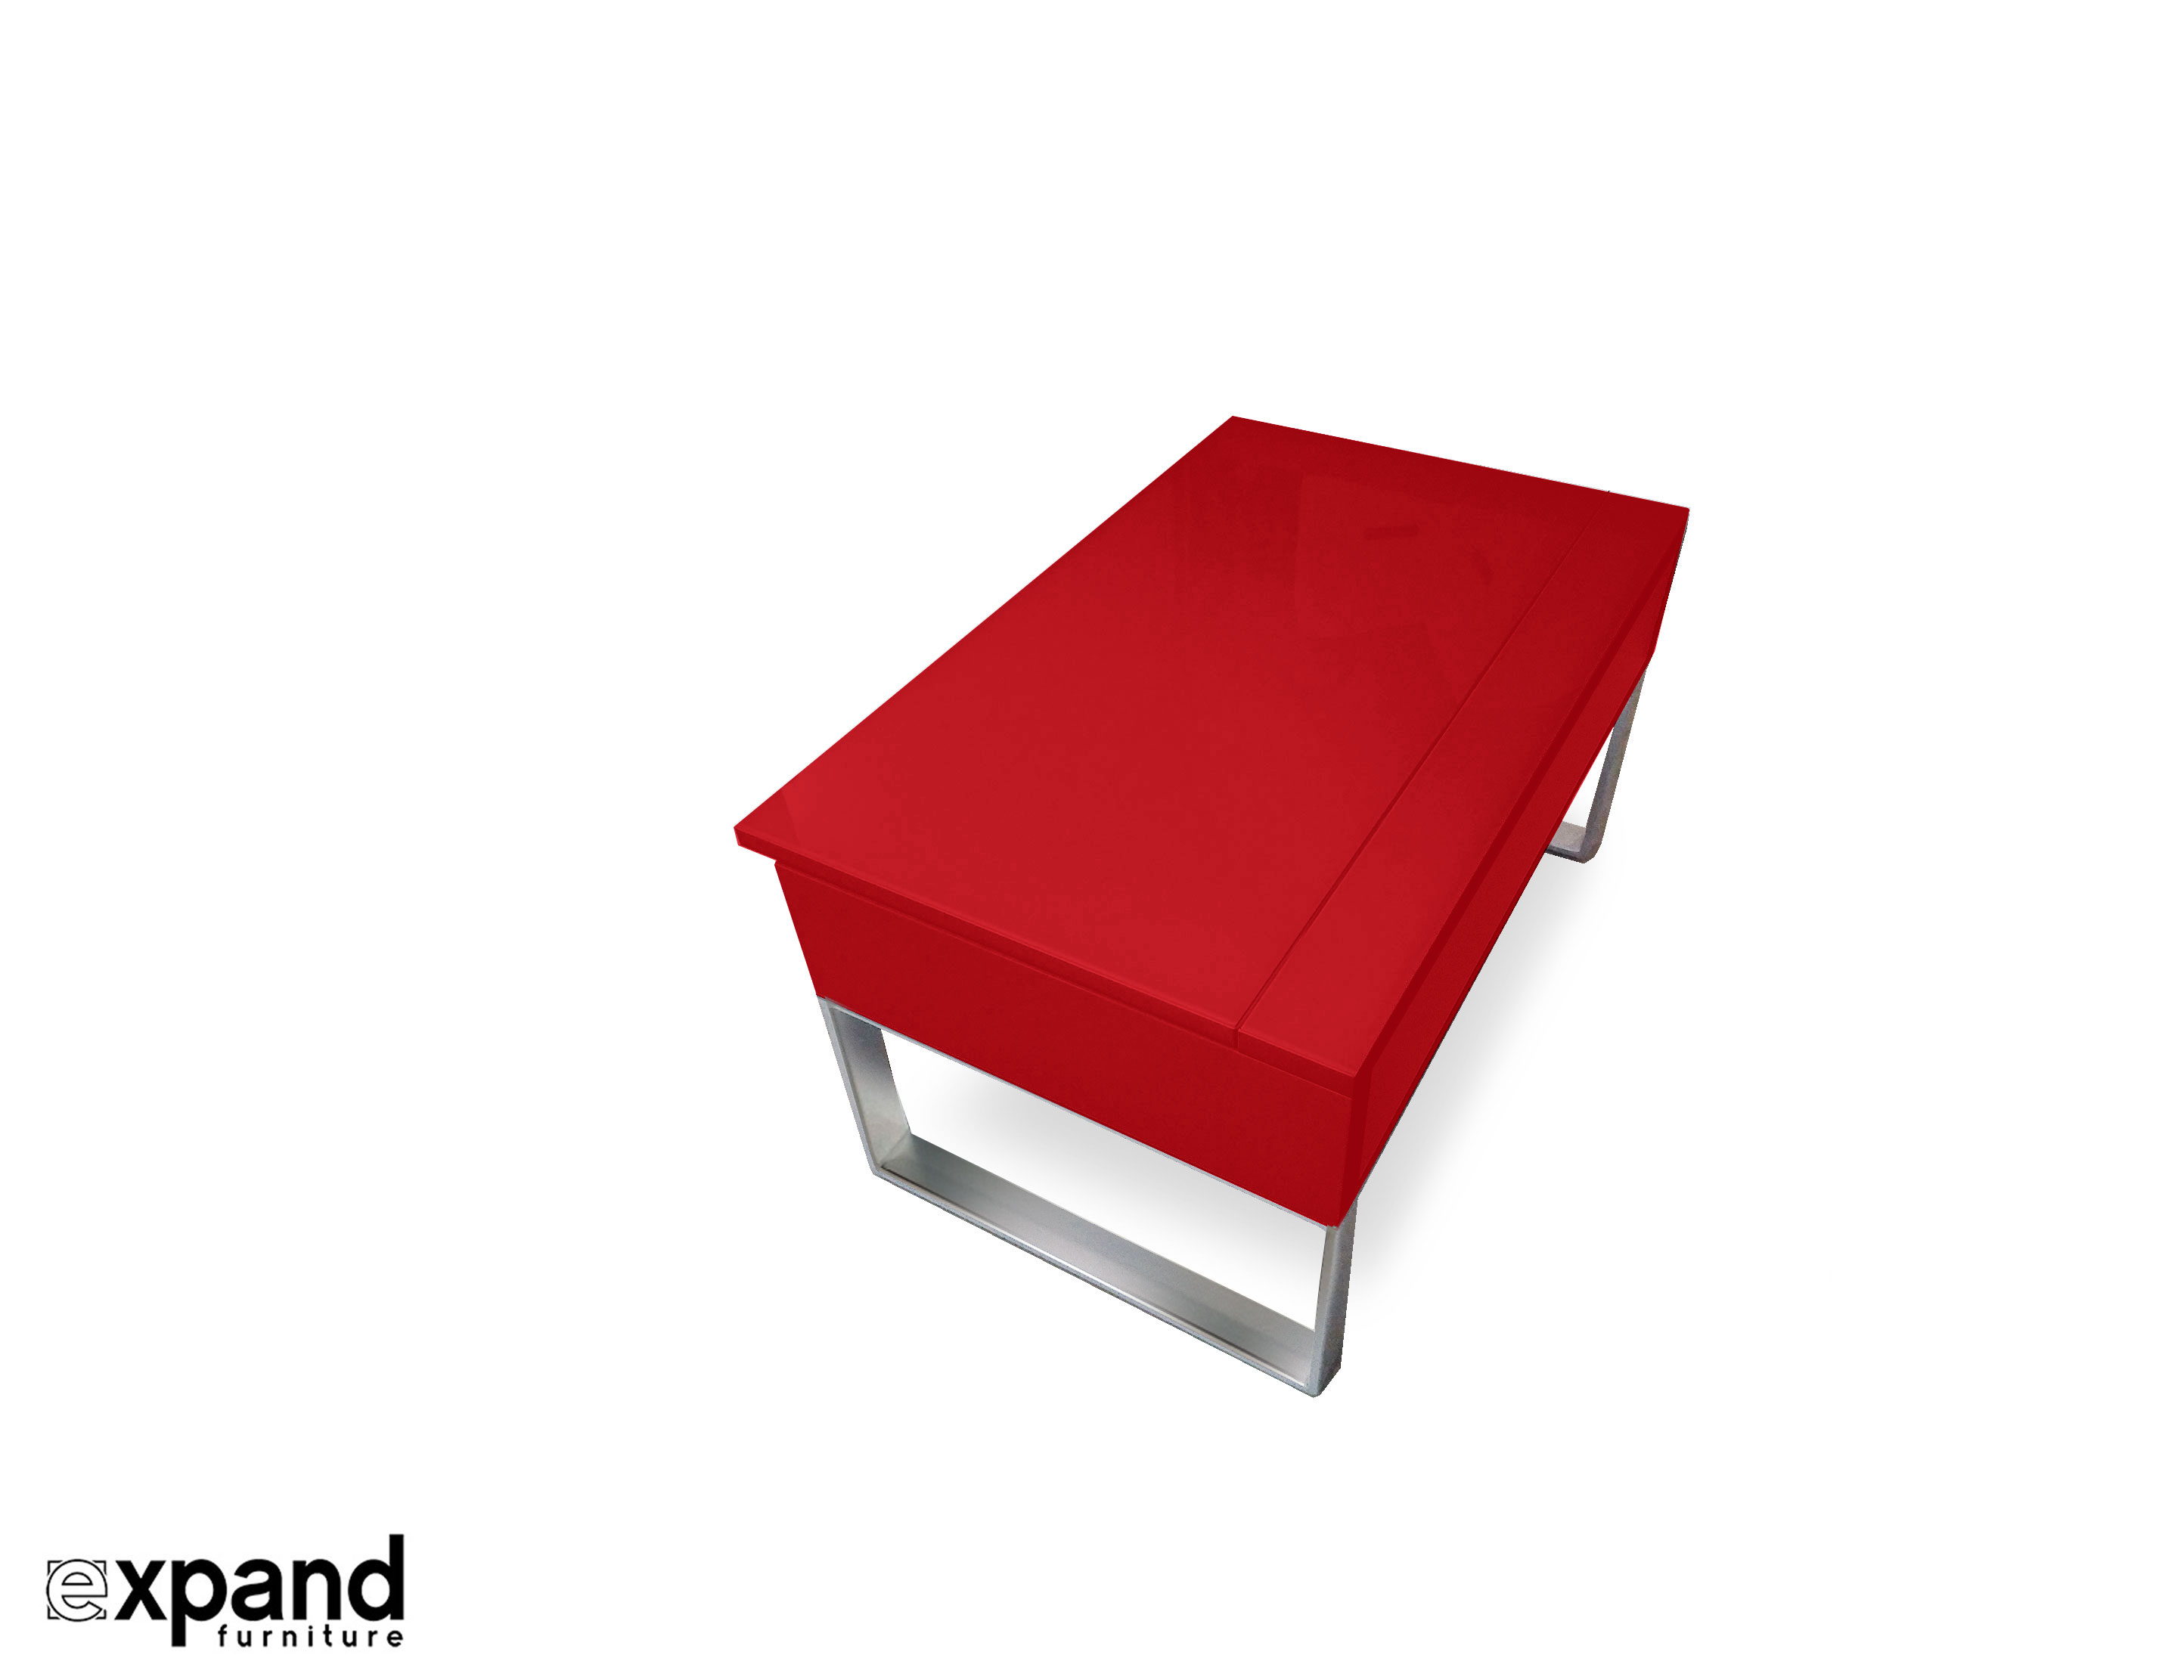 The Mini Boost Small Lifting Coffee Table Expand